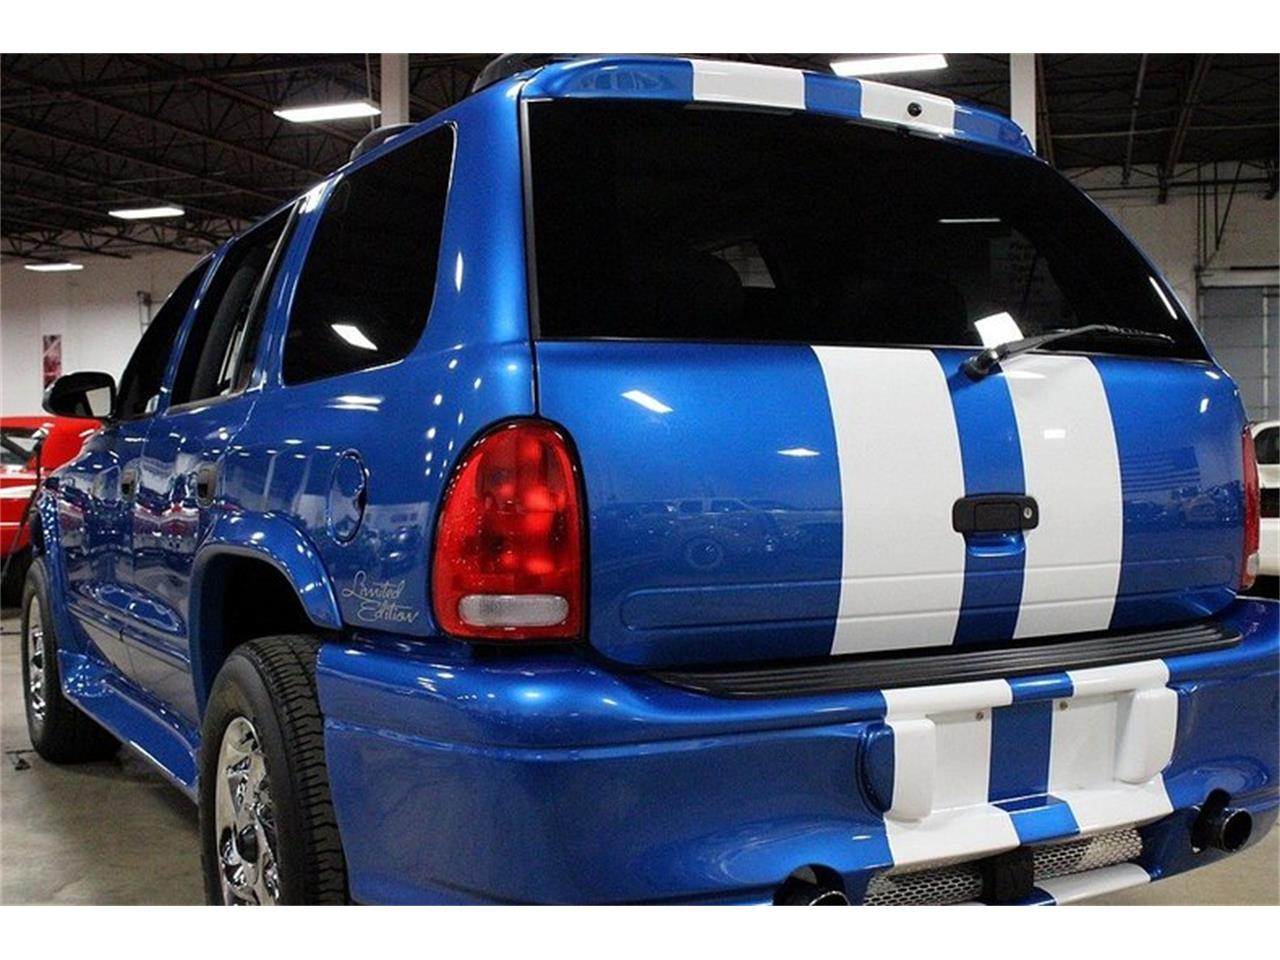 Large Picture of 1999 Dodge Durango Shelby SP-360 located in Michigan - $31,900.00 - MB1Y